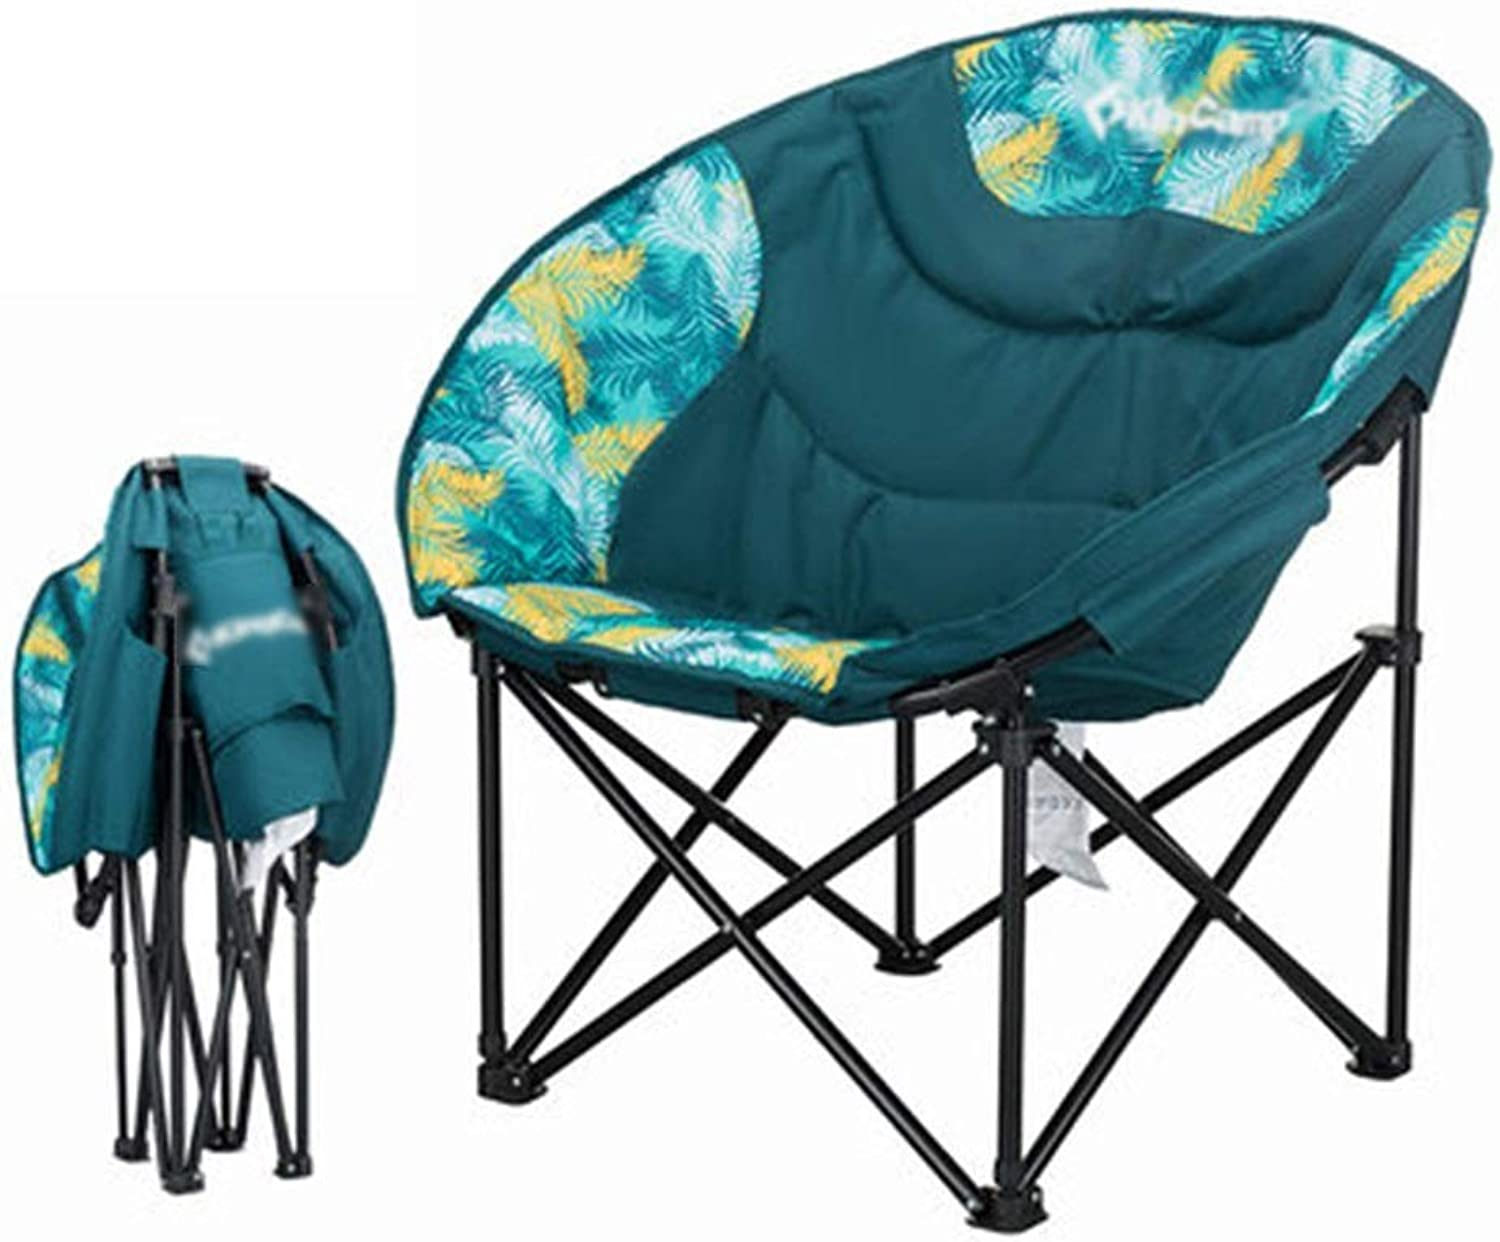 Green Outdoor Camping Chair, Cloth Plus Cotton Indoor and Outdoor Round Folding Chair Portable Folding Easy to CarryCan Bear 120kg